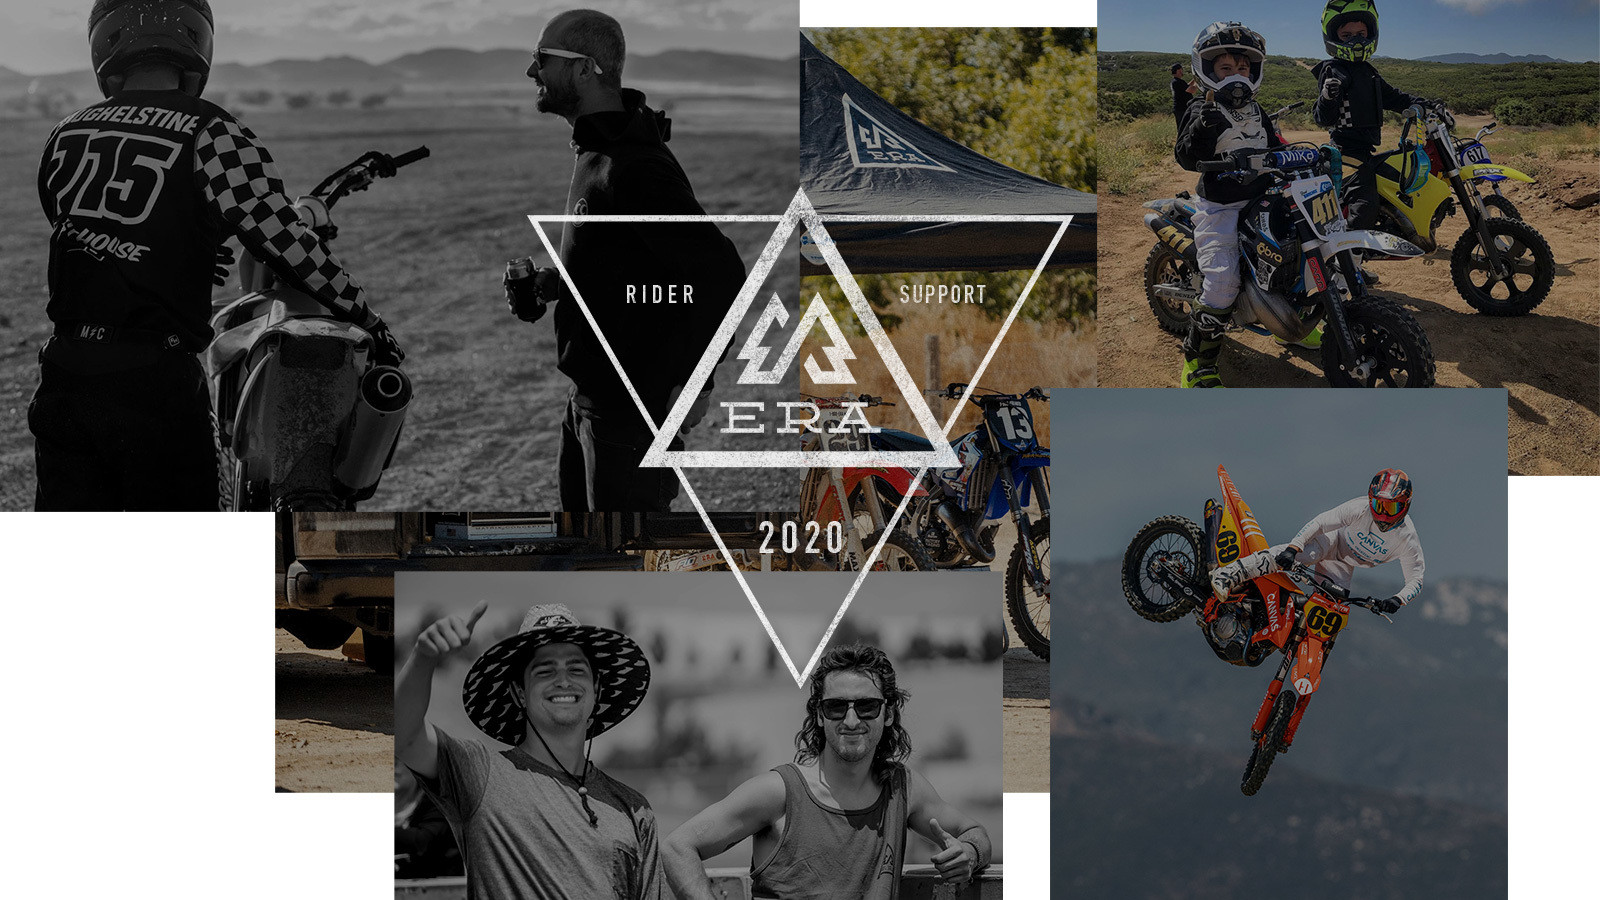 ERA Moto Co. Launches 2020 Rider Support Program